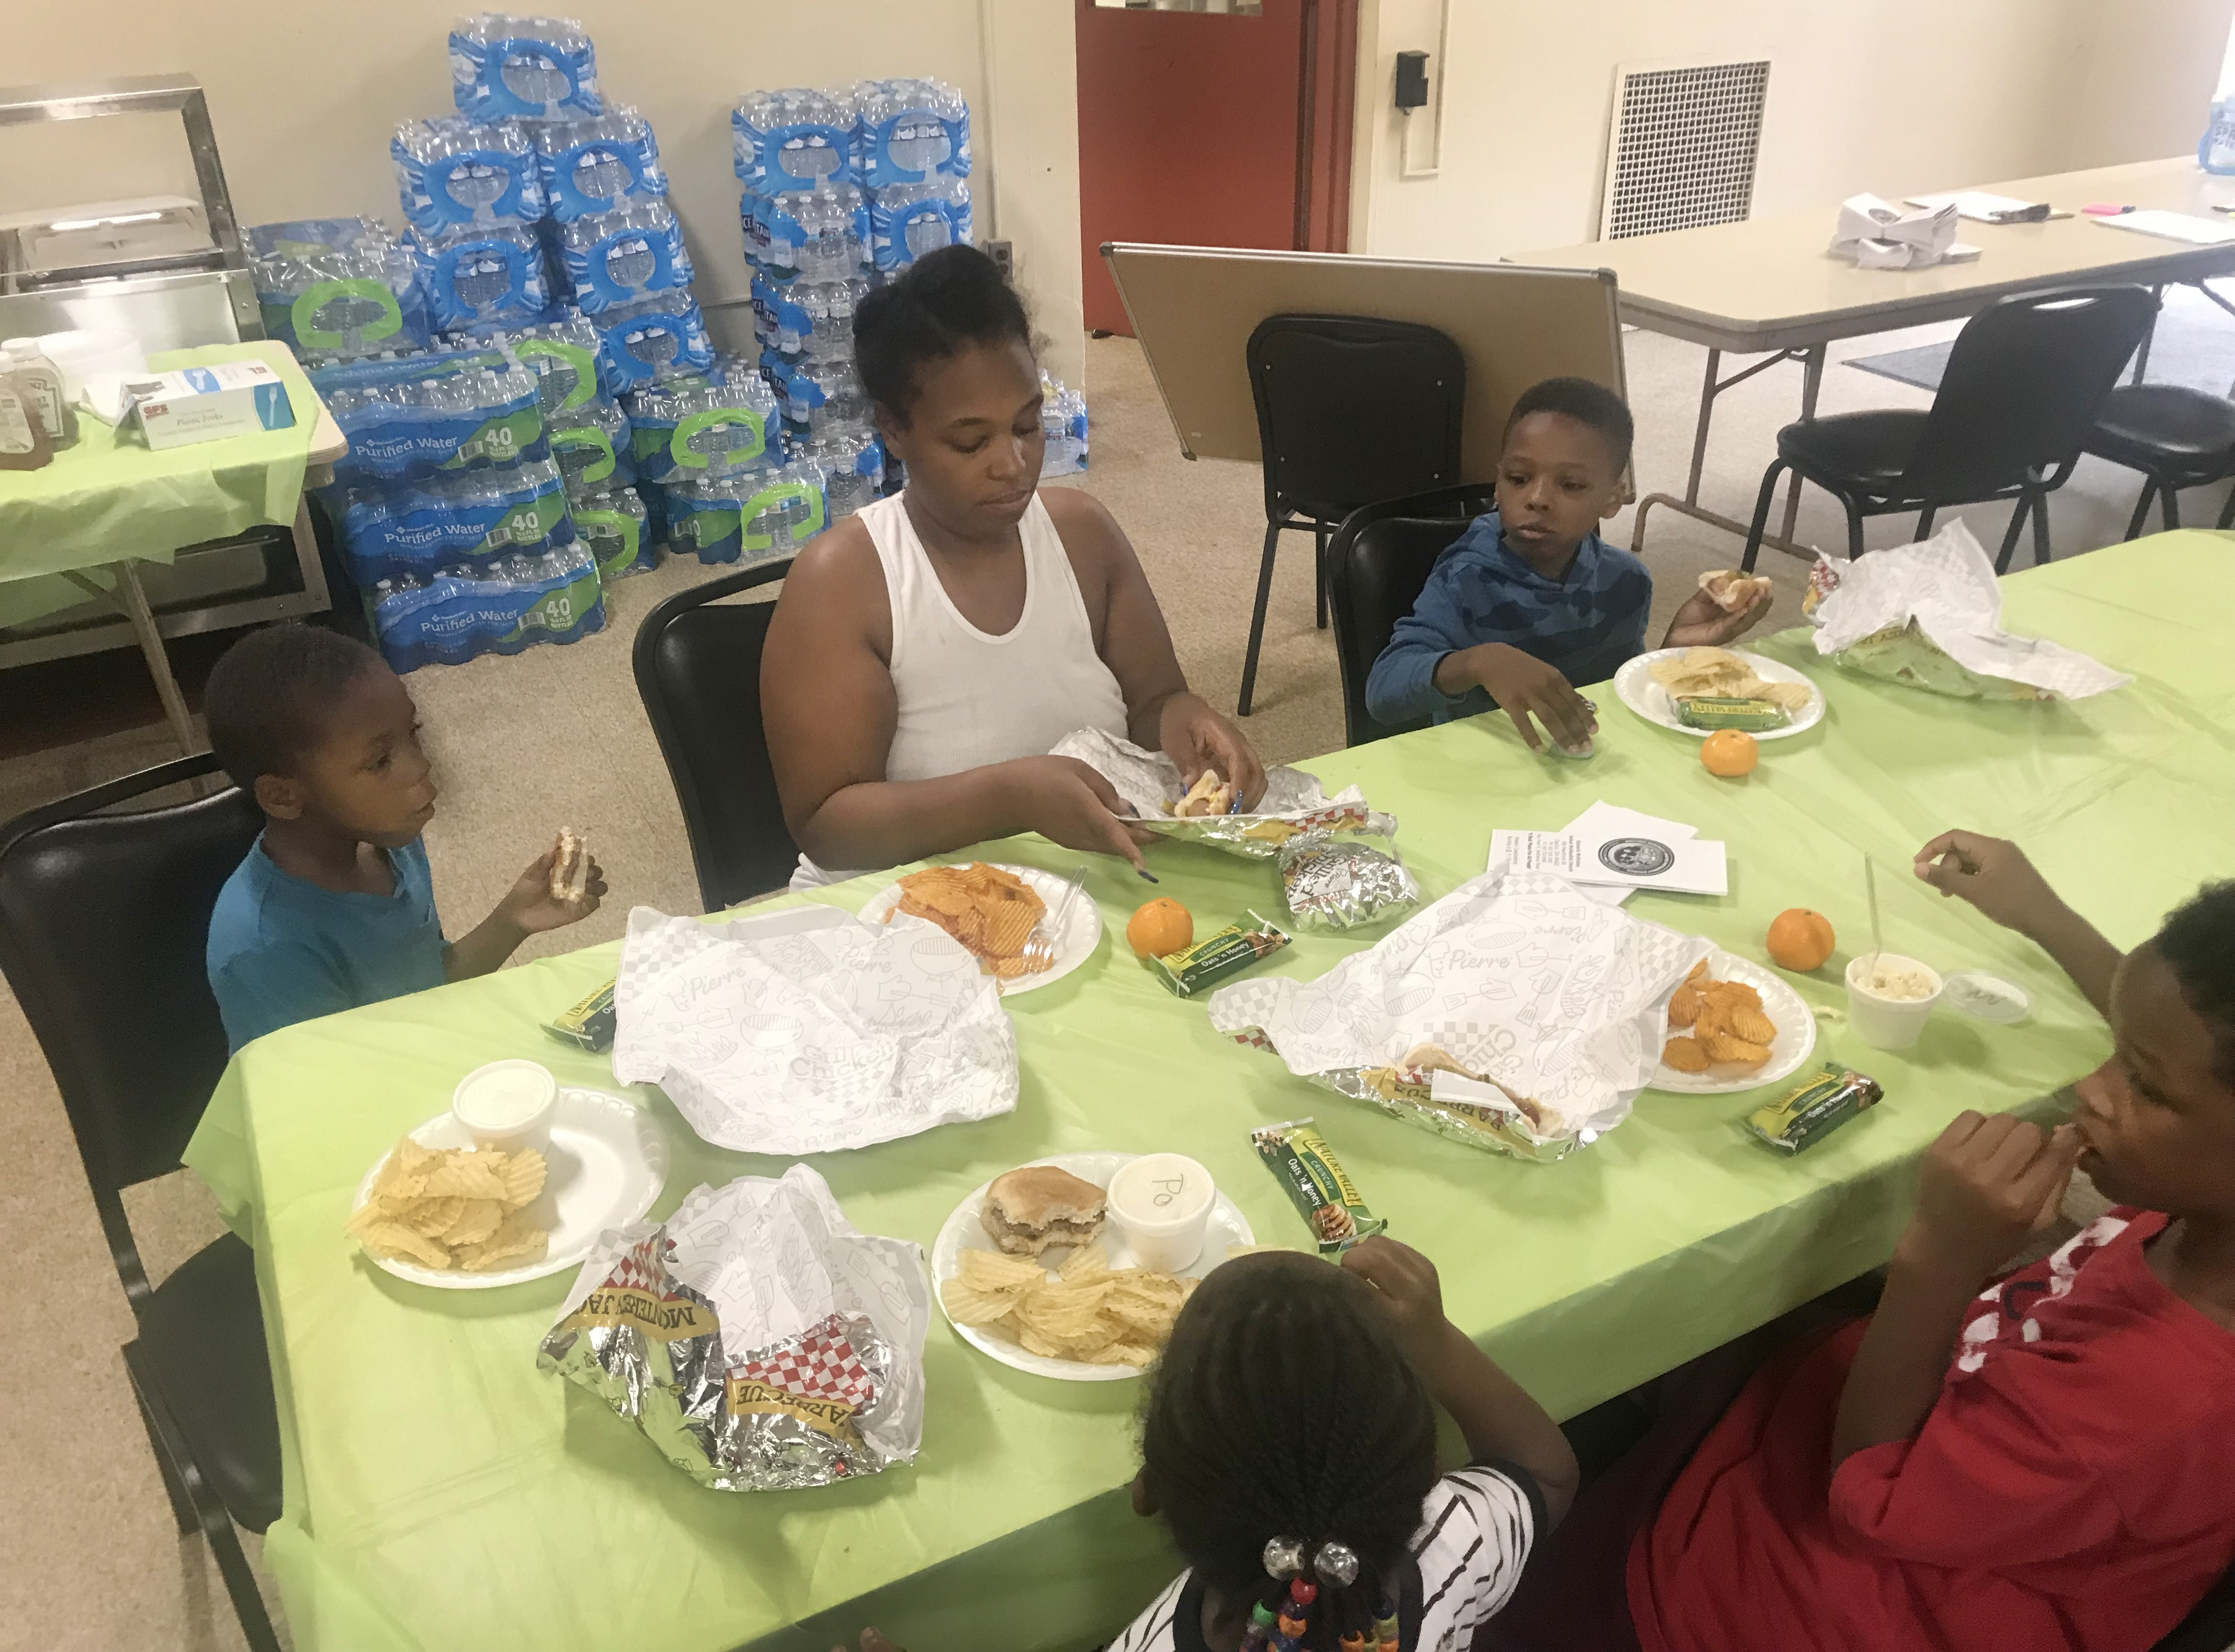 An unidentified woman eats with her children at McKinley United Methodist Church in Dayton, Ohio. The church offered shelter, hot food, free Wi-Fi, cases of water, electricity and clothes. Photo by the Rev. Peter Edward Matthews.